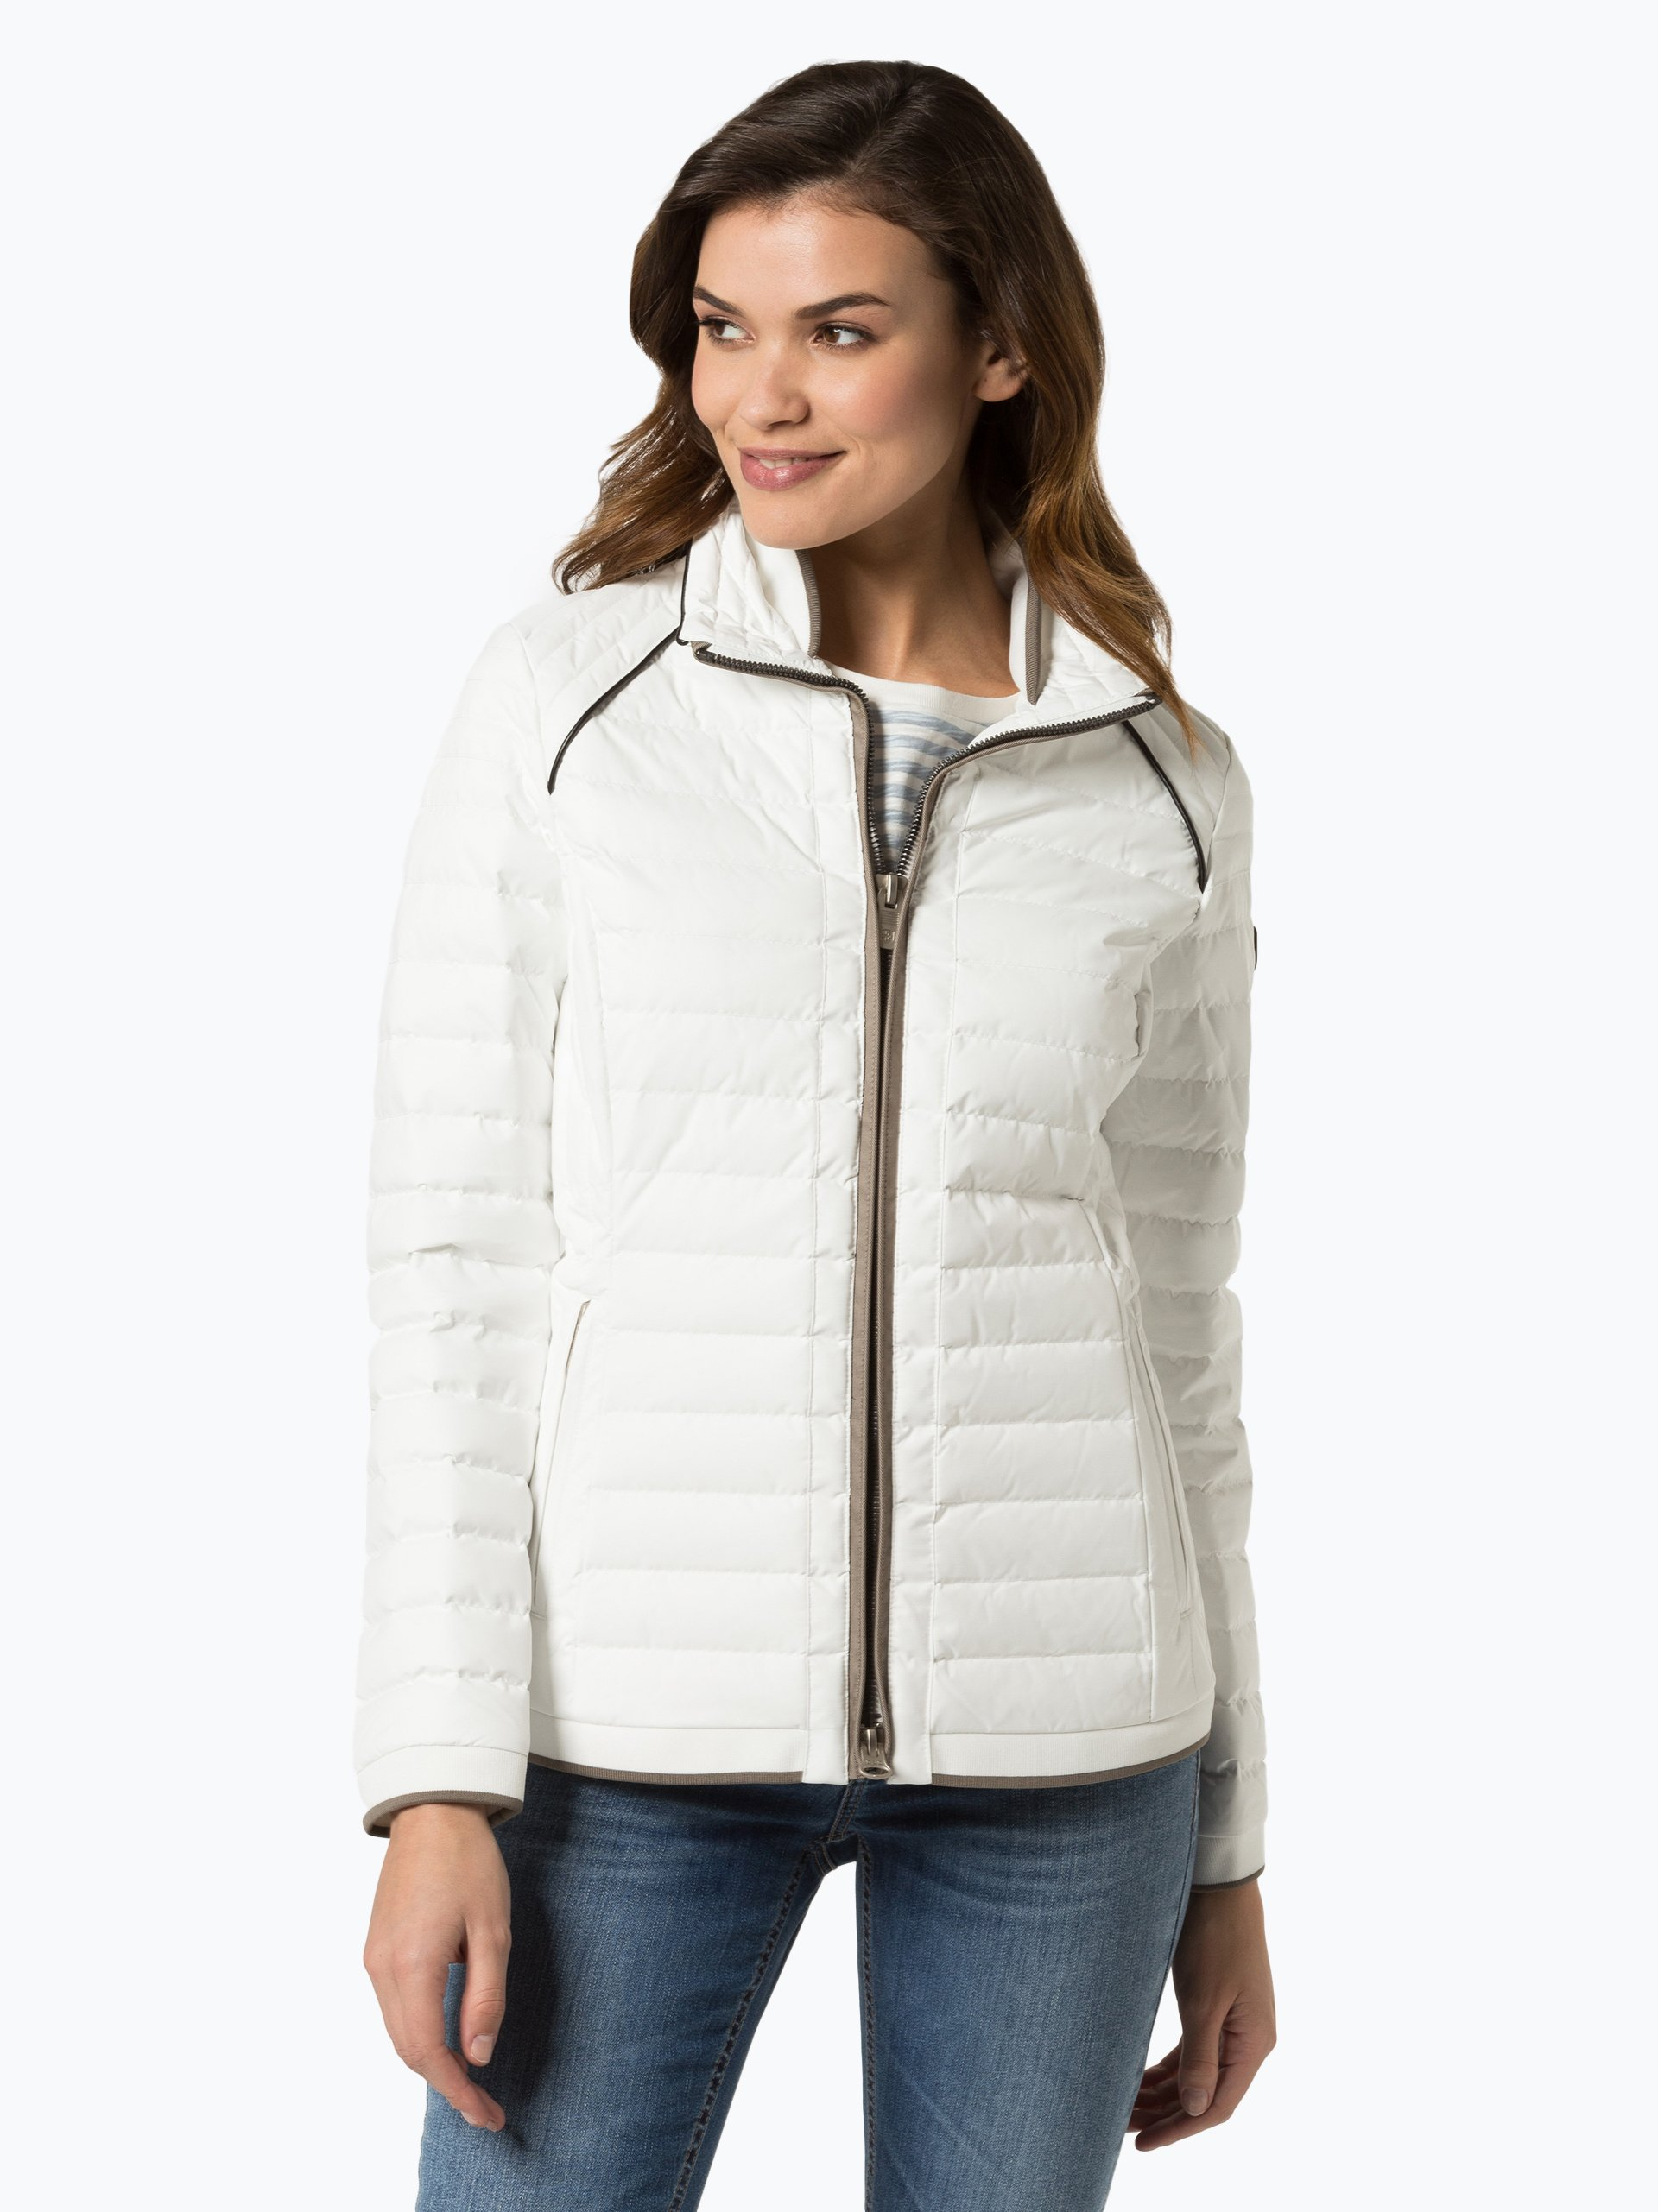 Wellensteyn Damen Funktionsjacke - Molecule Lady